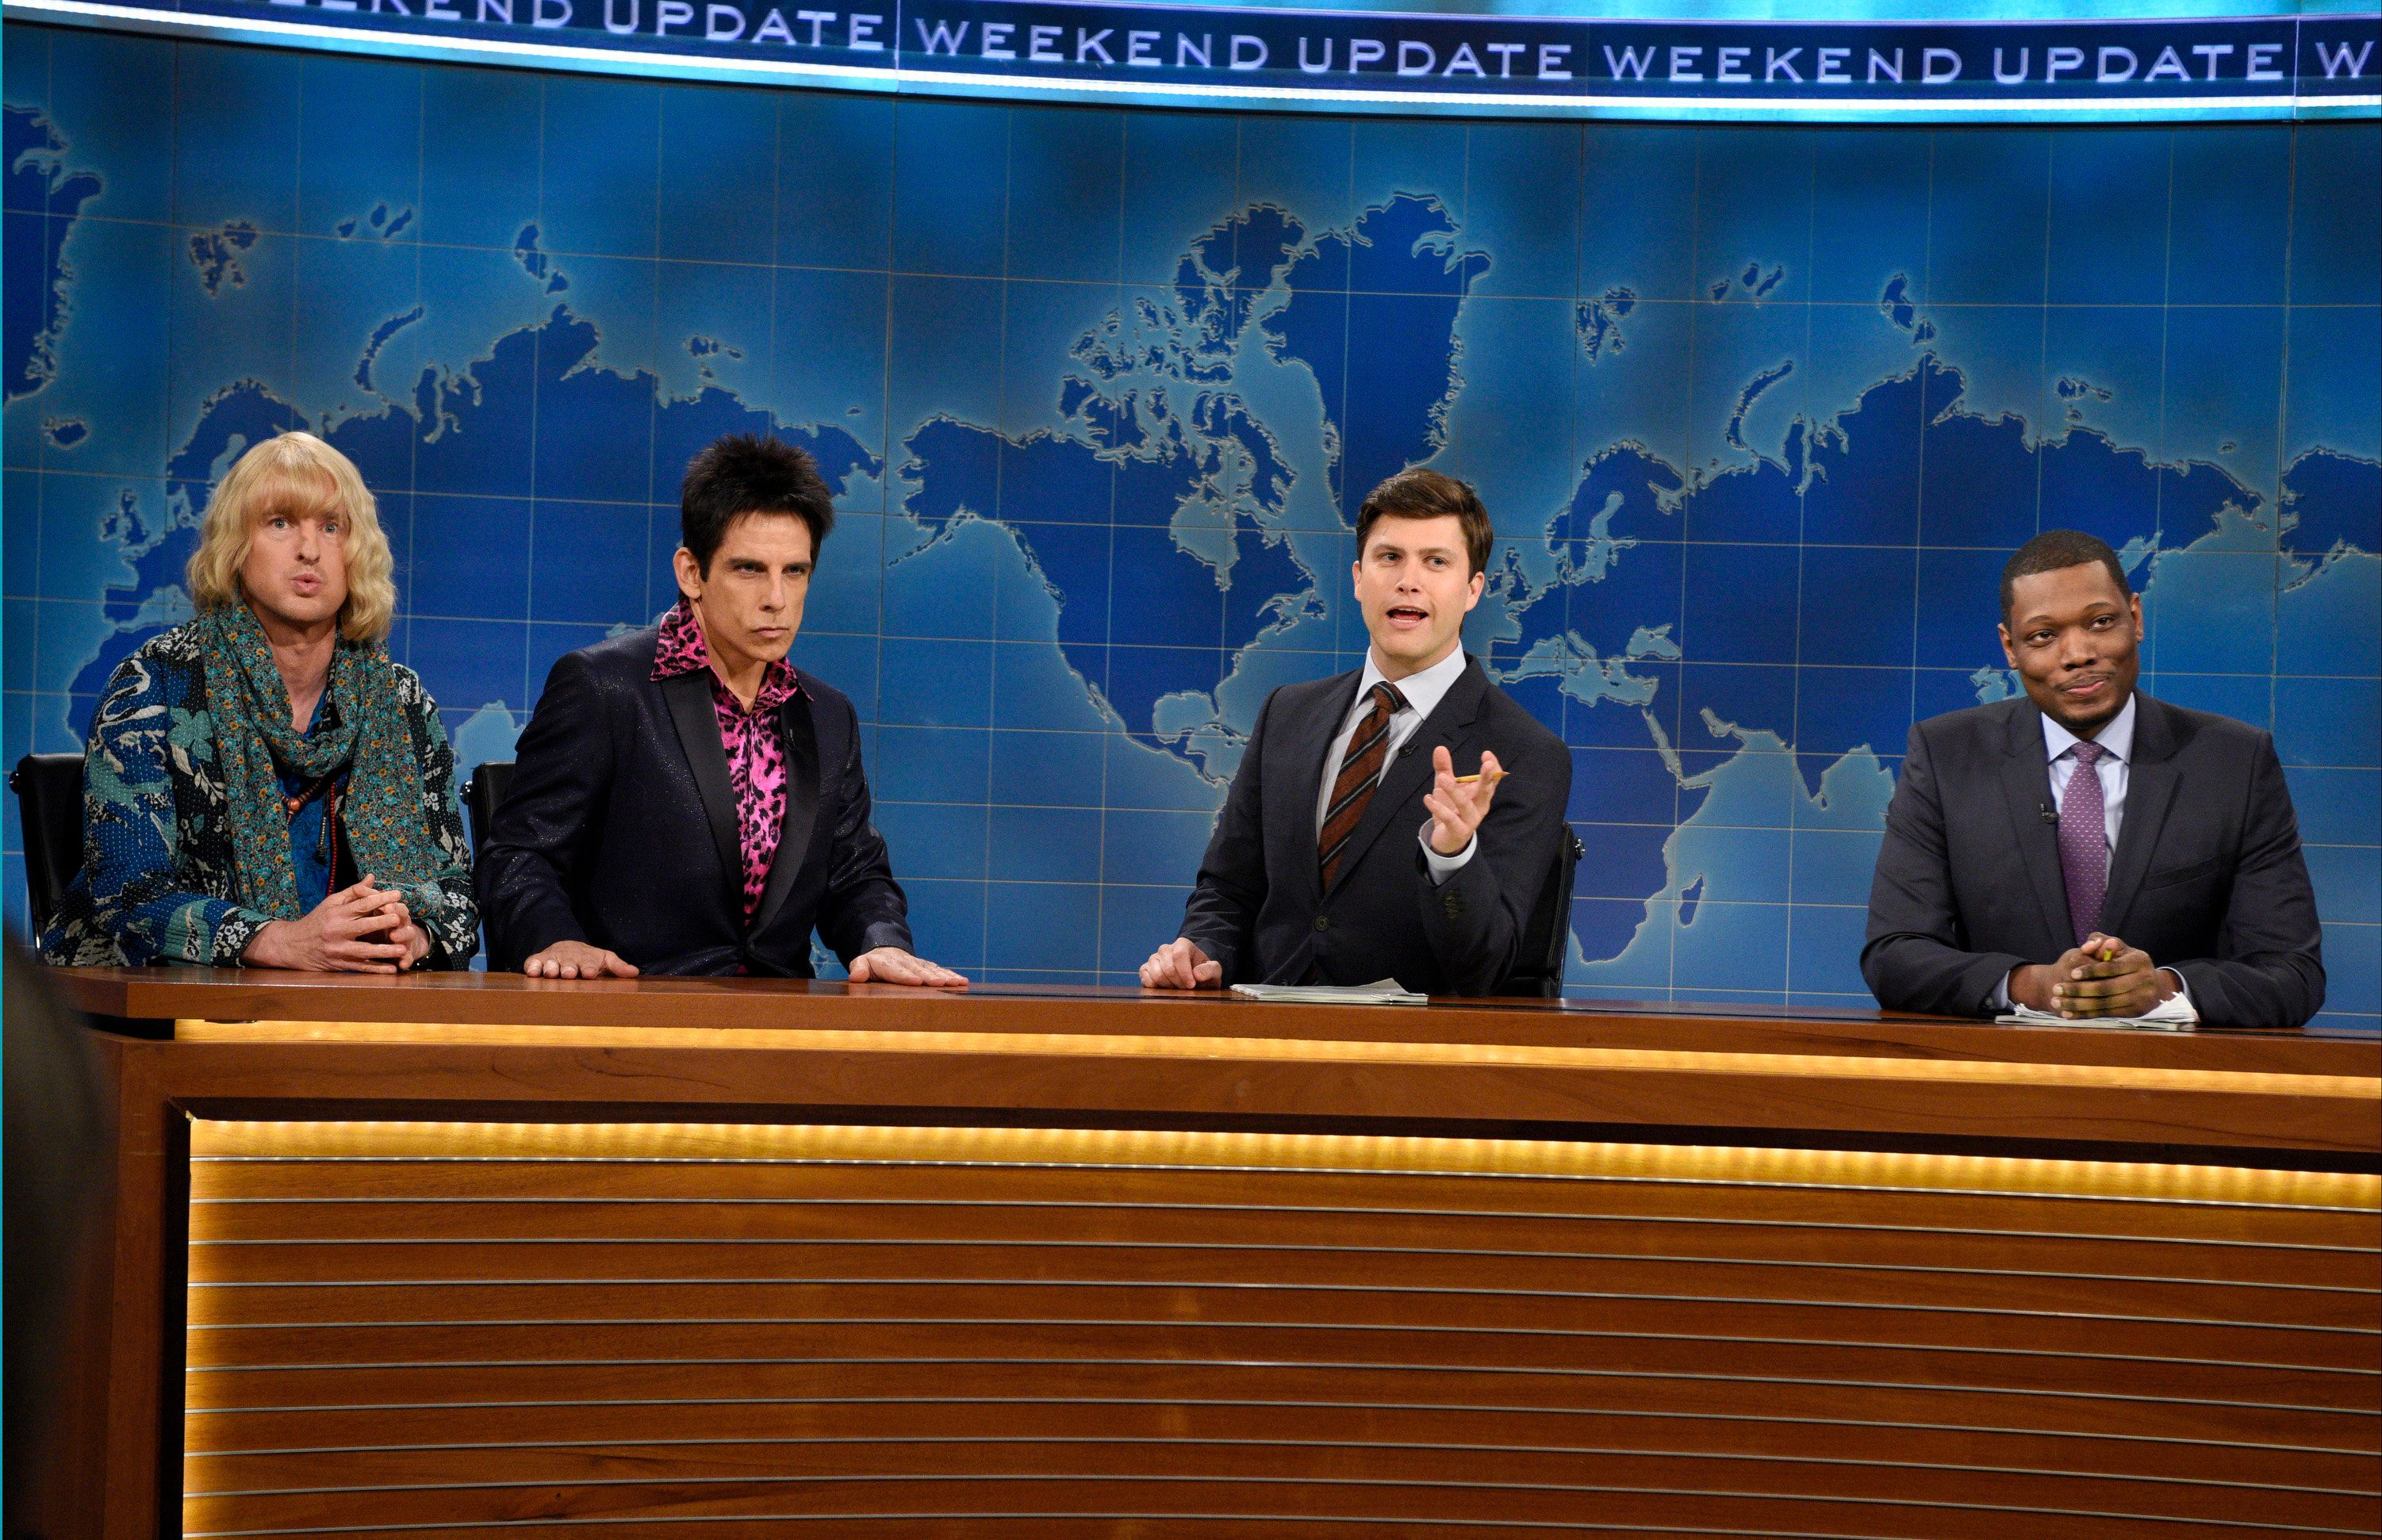 SNL's Weekend Update Summer Edition premieres with solid first episode class=